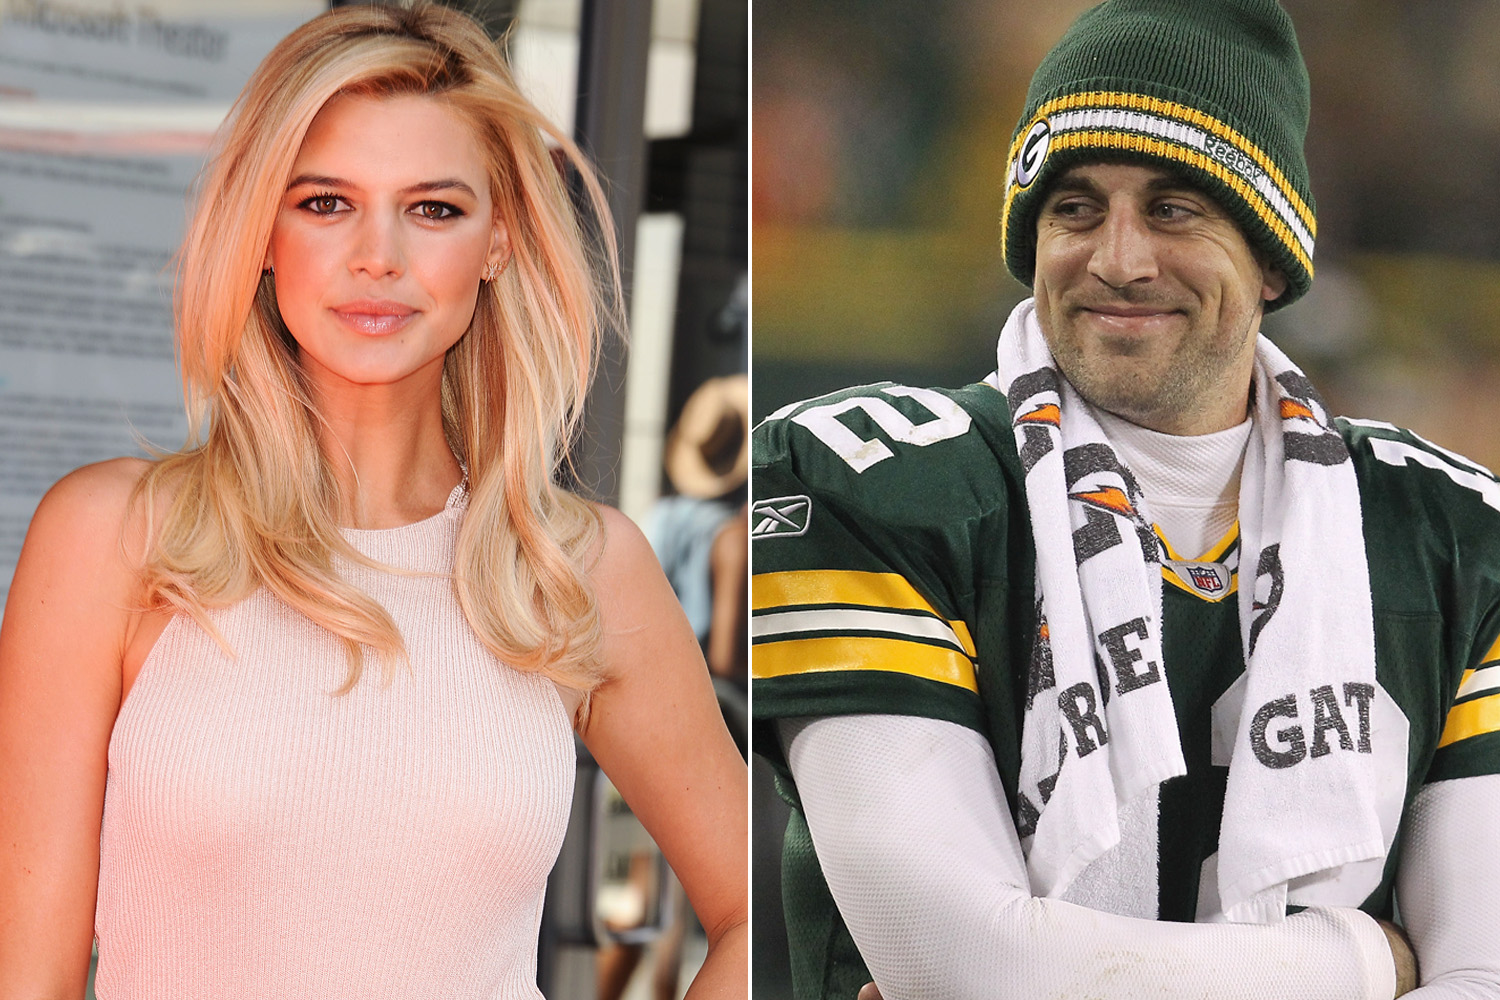 Aaron Rodgers Seen On Rebound Golf Date With Swimsuit Model